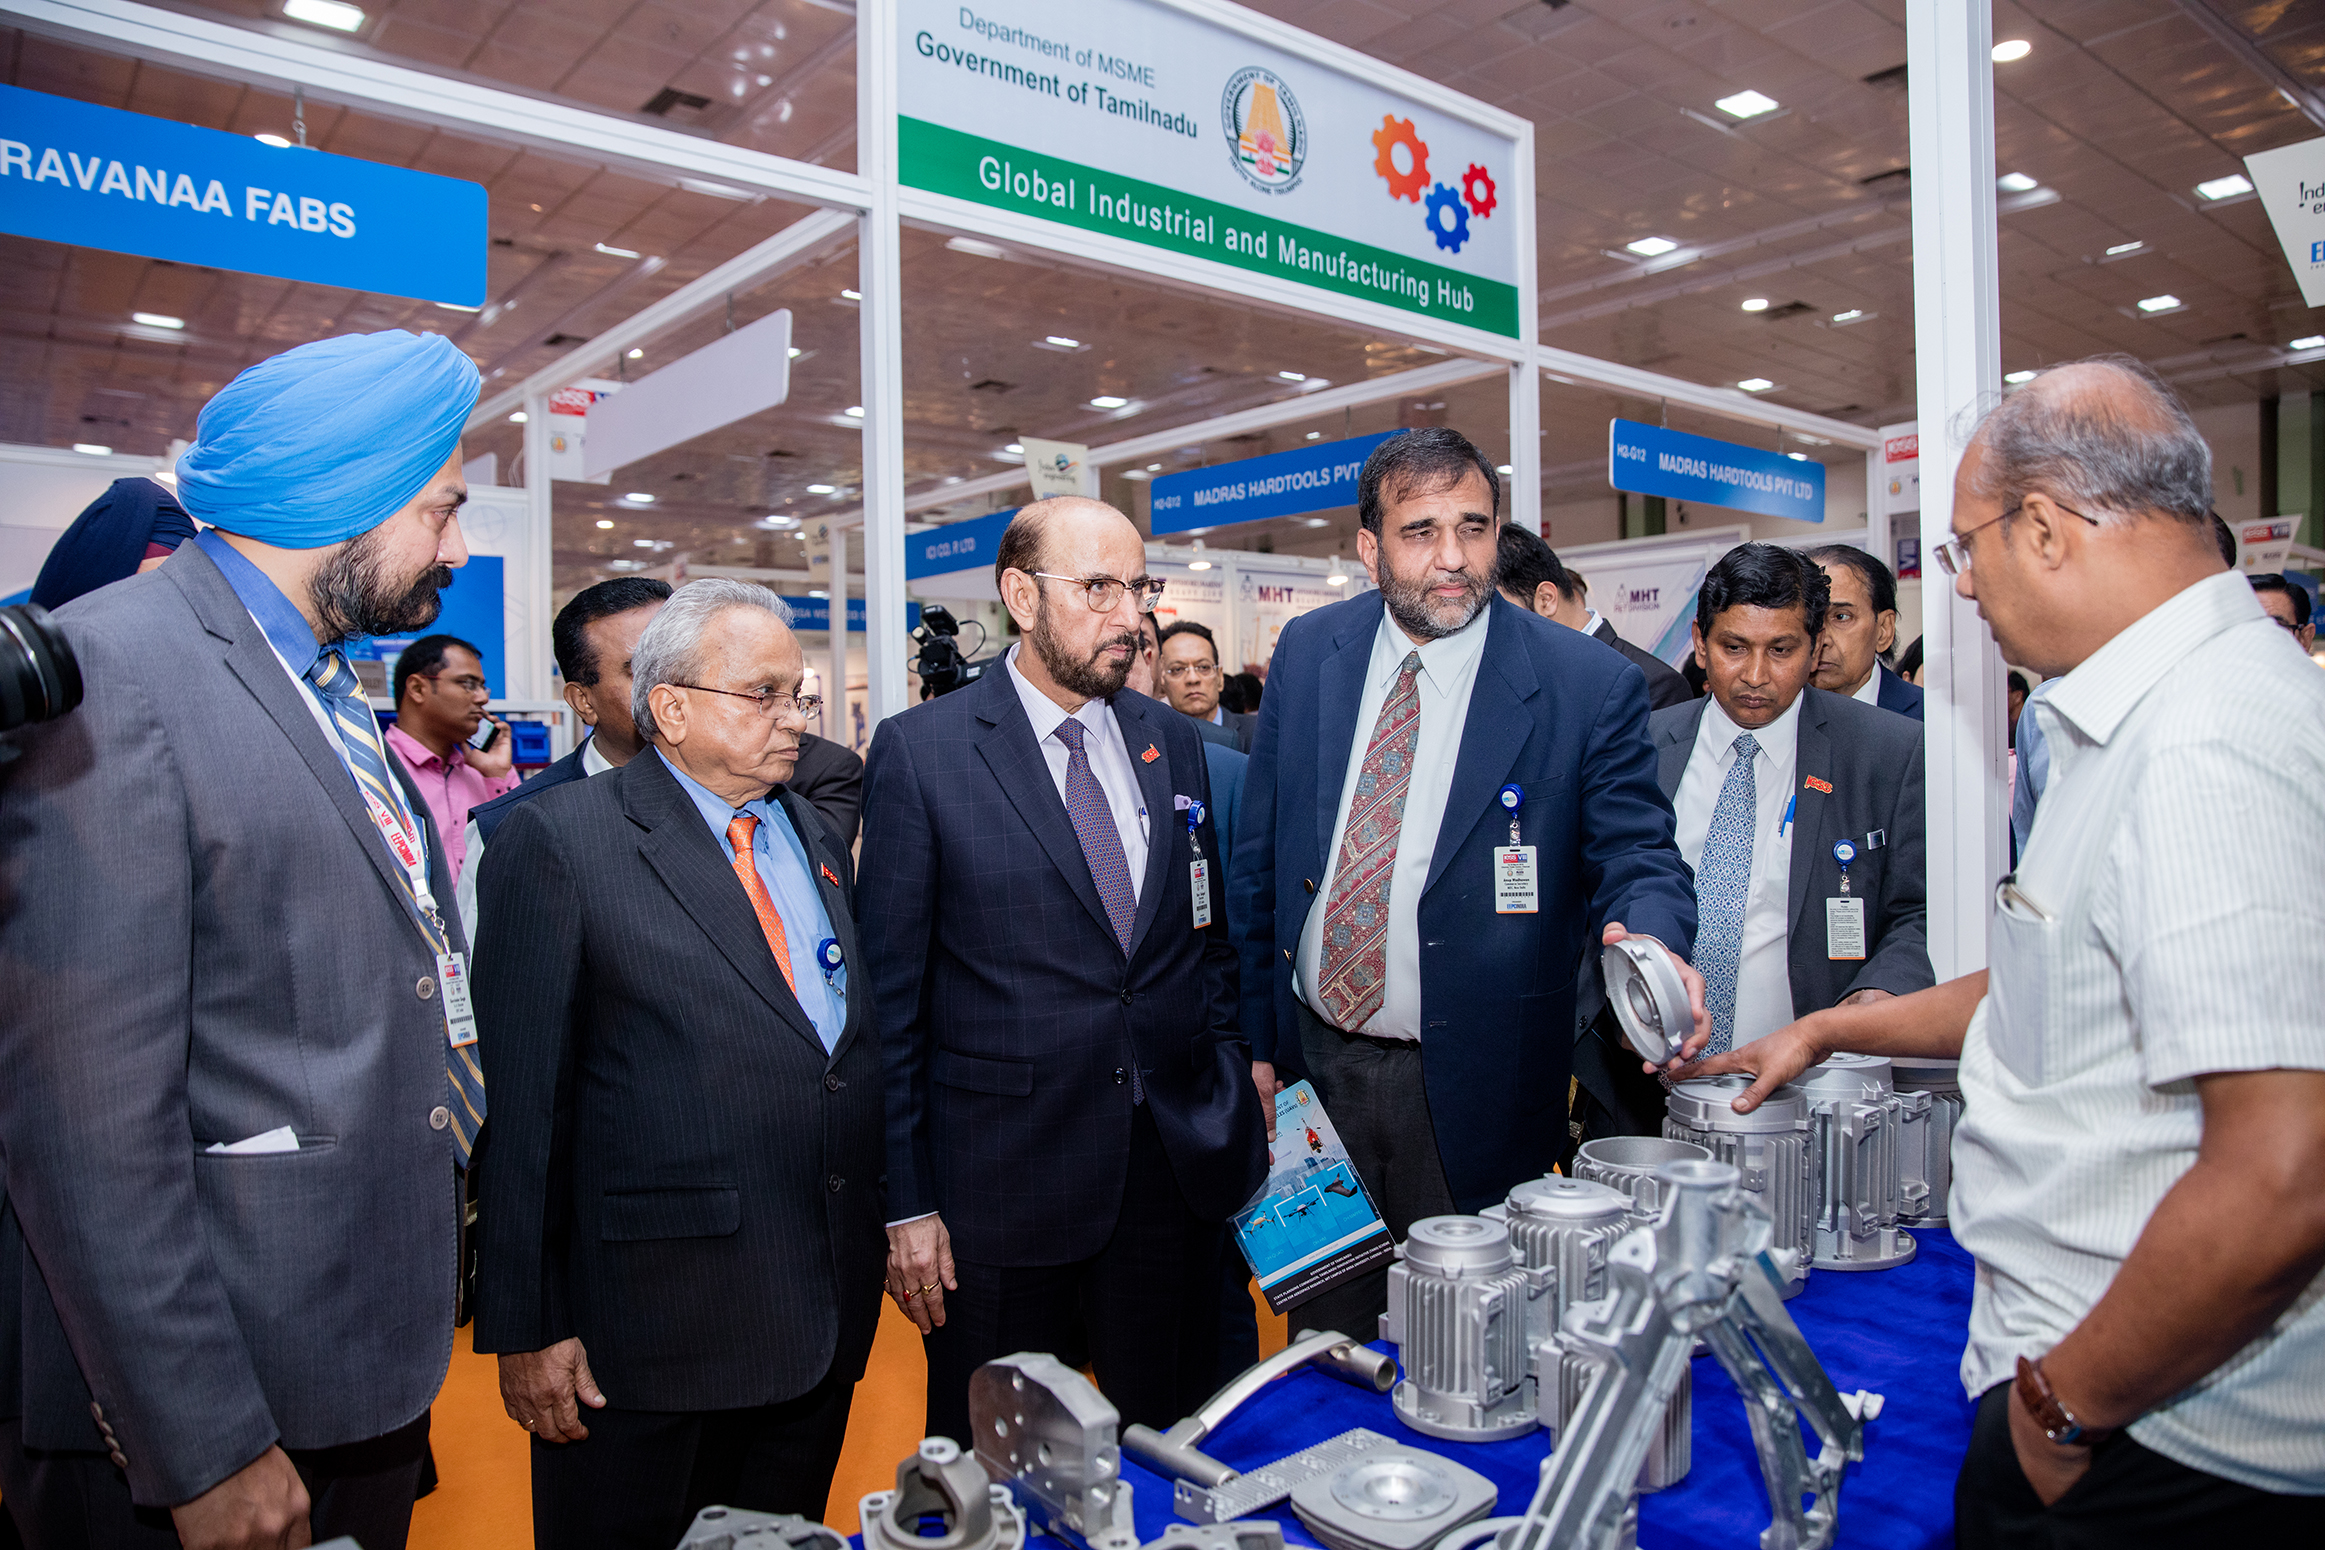 Dr. Anup Wadhawan, Commerce Secretary, Dept of Commerce, Ministry of Commerce & Industry, Govt of India; Mr. Ravi Sehgal, Chairman, EEPC India; Mr. Mahesh K. Desai, Sr. Vice Chairman, EEPC India; Mr. Suranjan Gupta, Executive Director, EEPC India and Mr. Gurvinder Singh, Director (Exhibitions), EEPC India taking a VIP tour of the exhibition. Mr P R Venkatachalam, Working Committee Member, EEPC India and Mr Anoop Marwaha, Dy Regional Chairman (WR), EEPC India also seen.